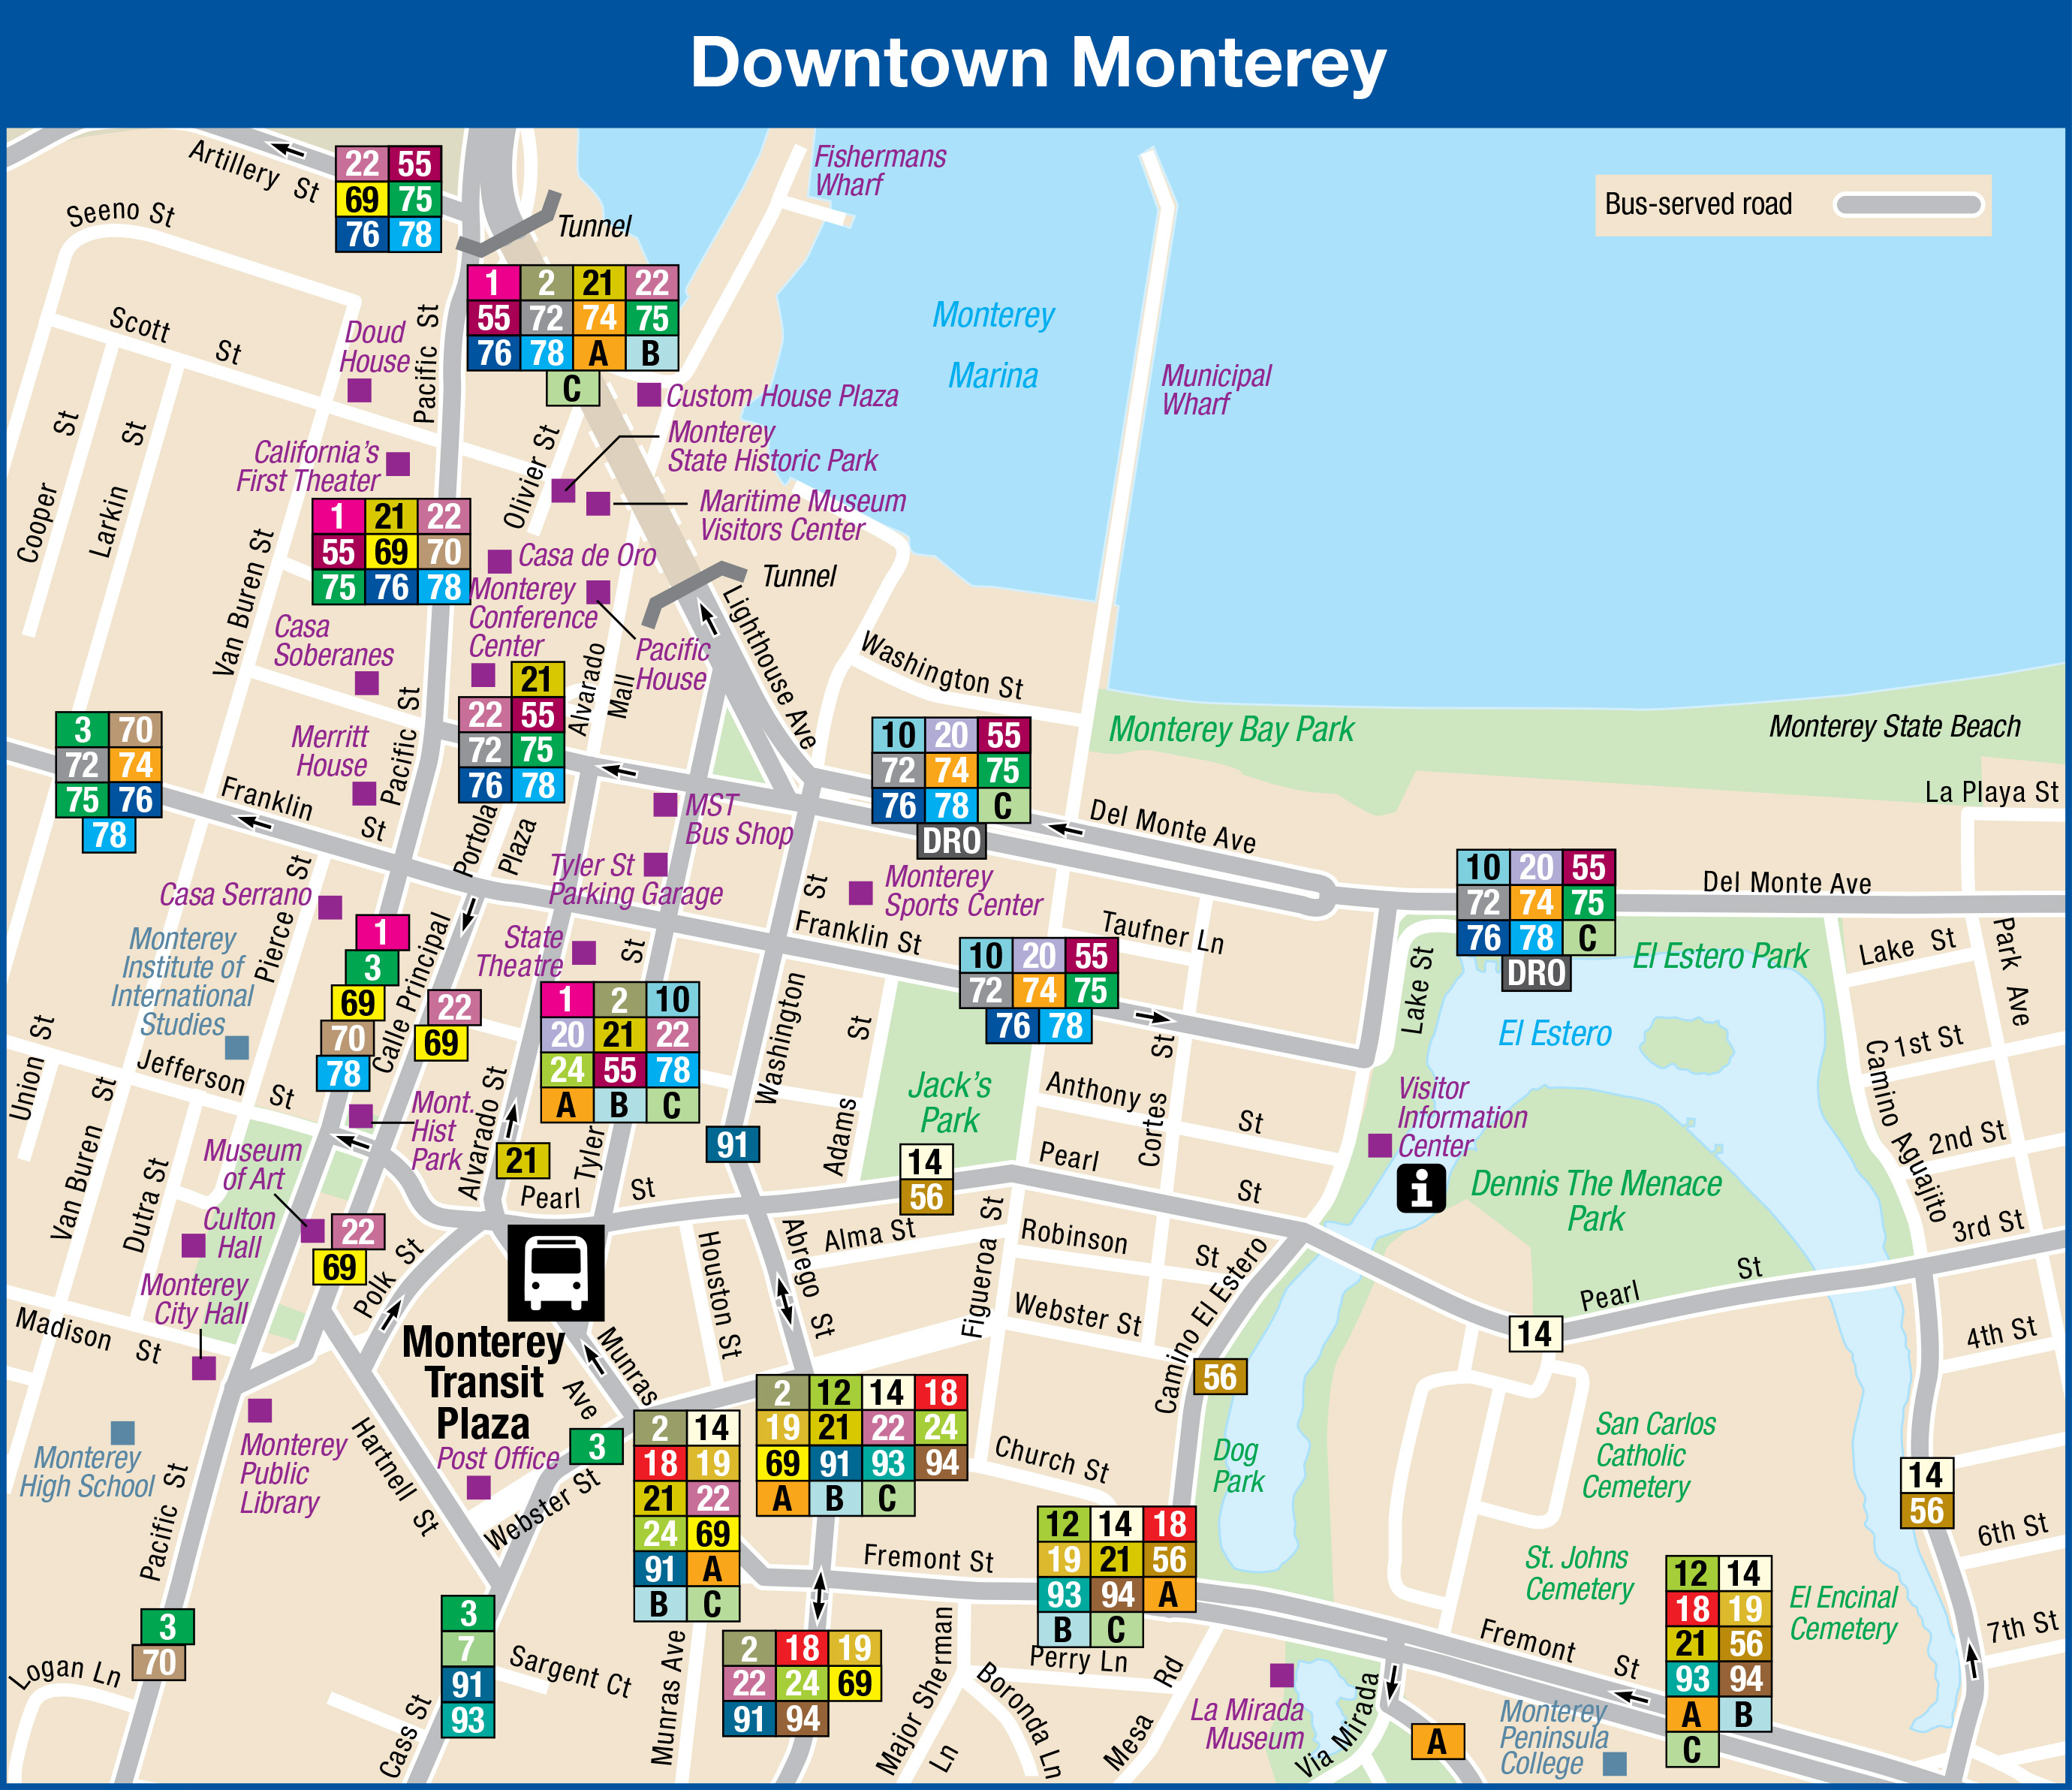 Downtown Monterey Maps Of California Where Is Monterey California On - Where Is Monterey California On The Map